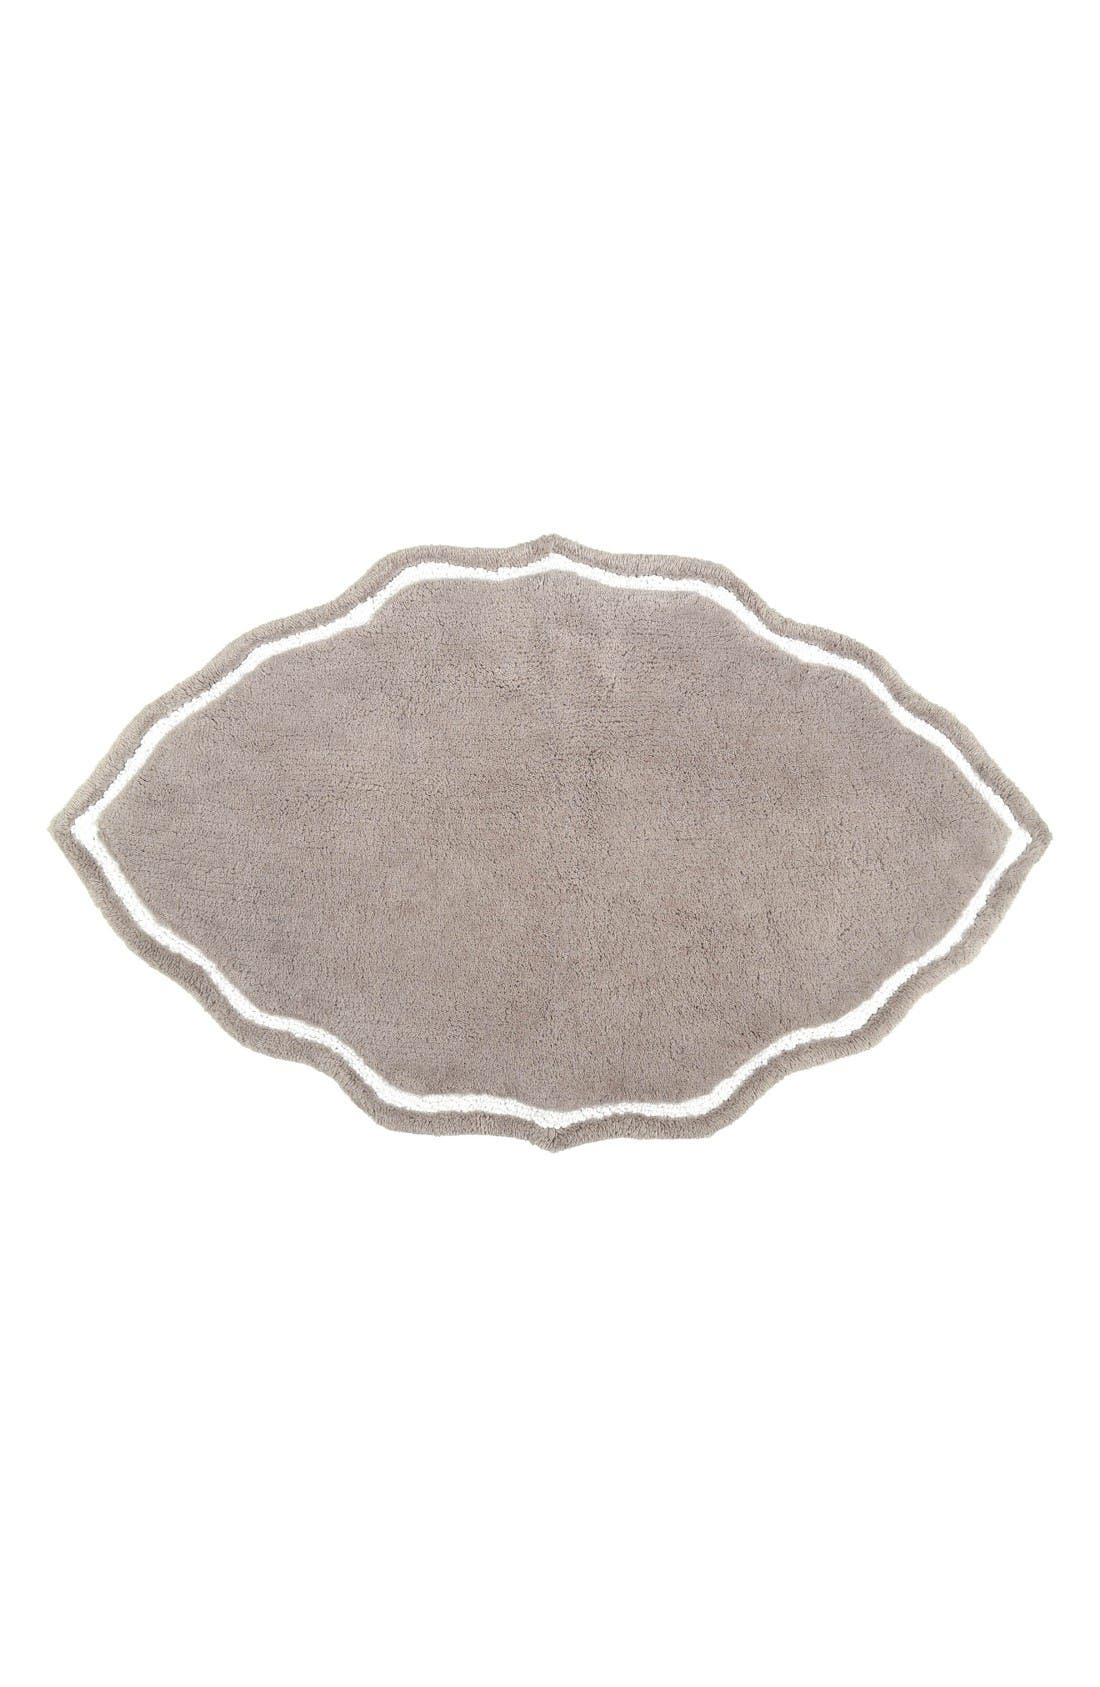 JOHN ROBSHAW Signature Tufted Bath Rug